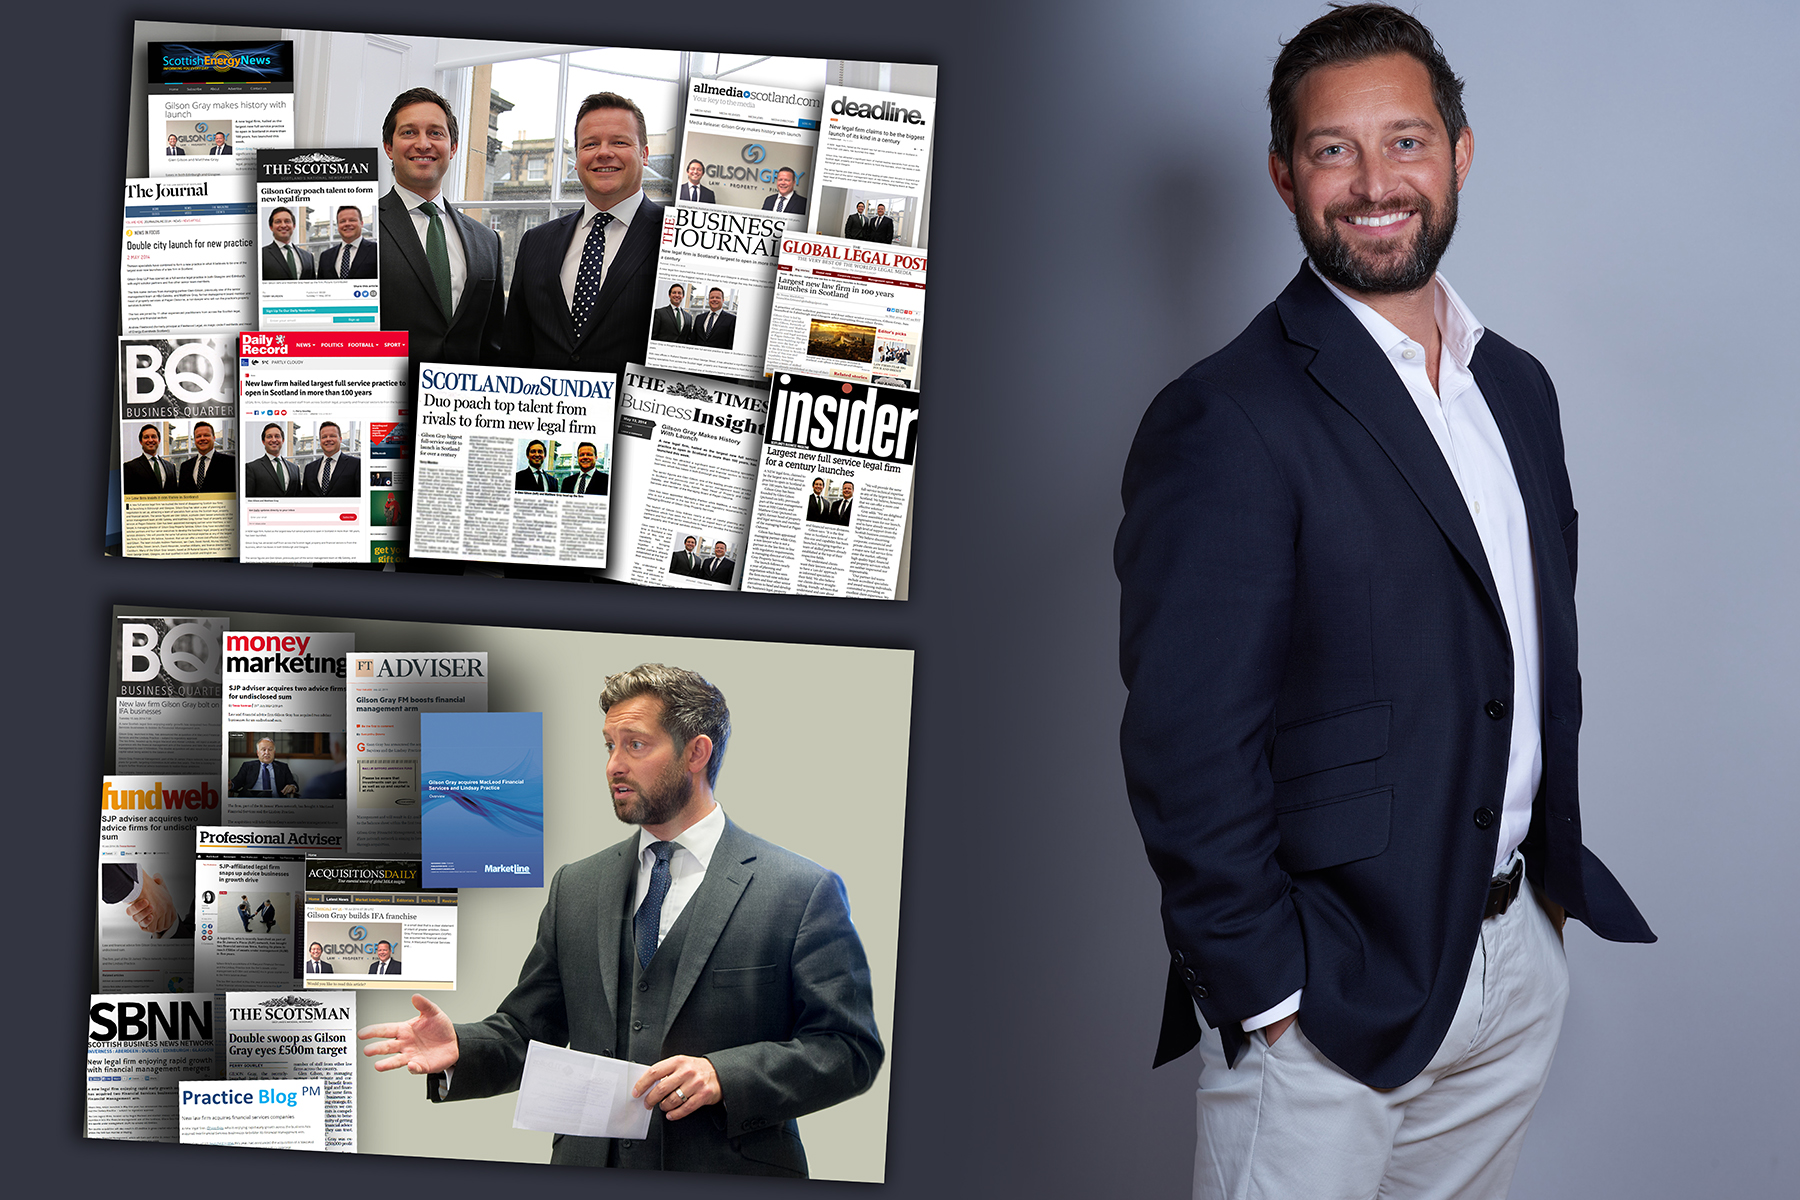 Glen Gilson is an established thought leader thanks to successful legal PR